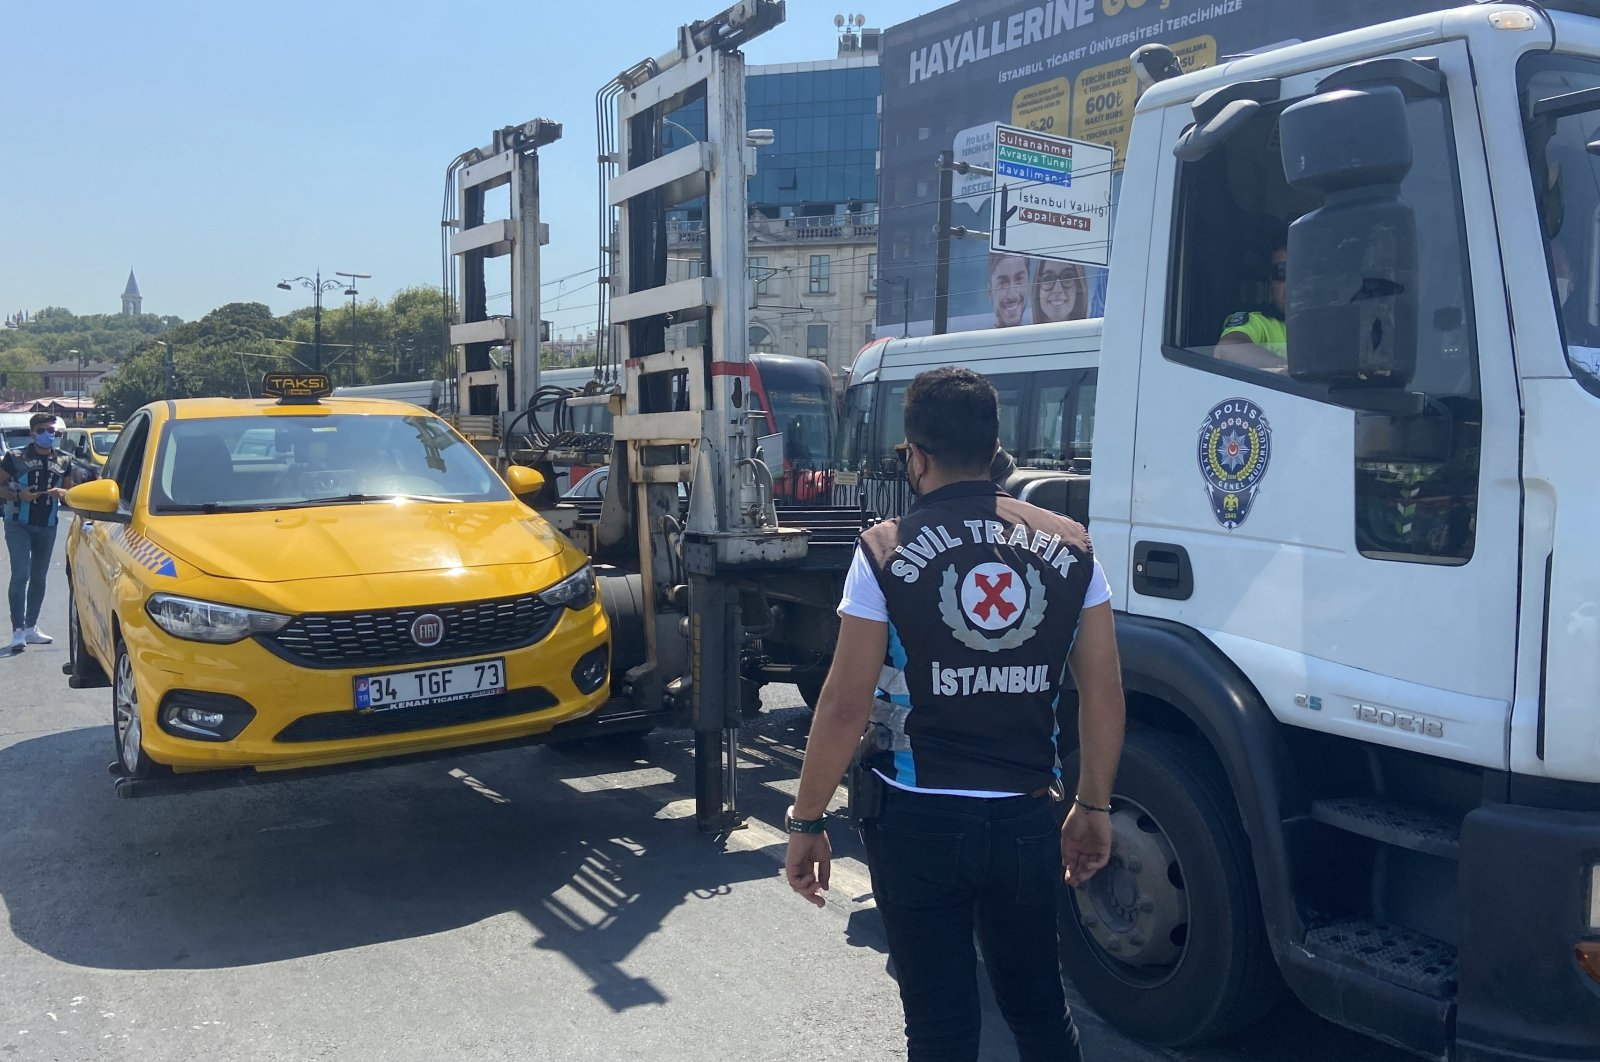 Police officers impound a taxi whose driver violated rules, in Eminönü quarter, in Istanbul, Turkey, Aug. 10, 2021. (IHA PHOTO)